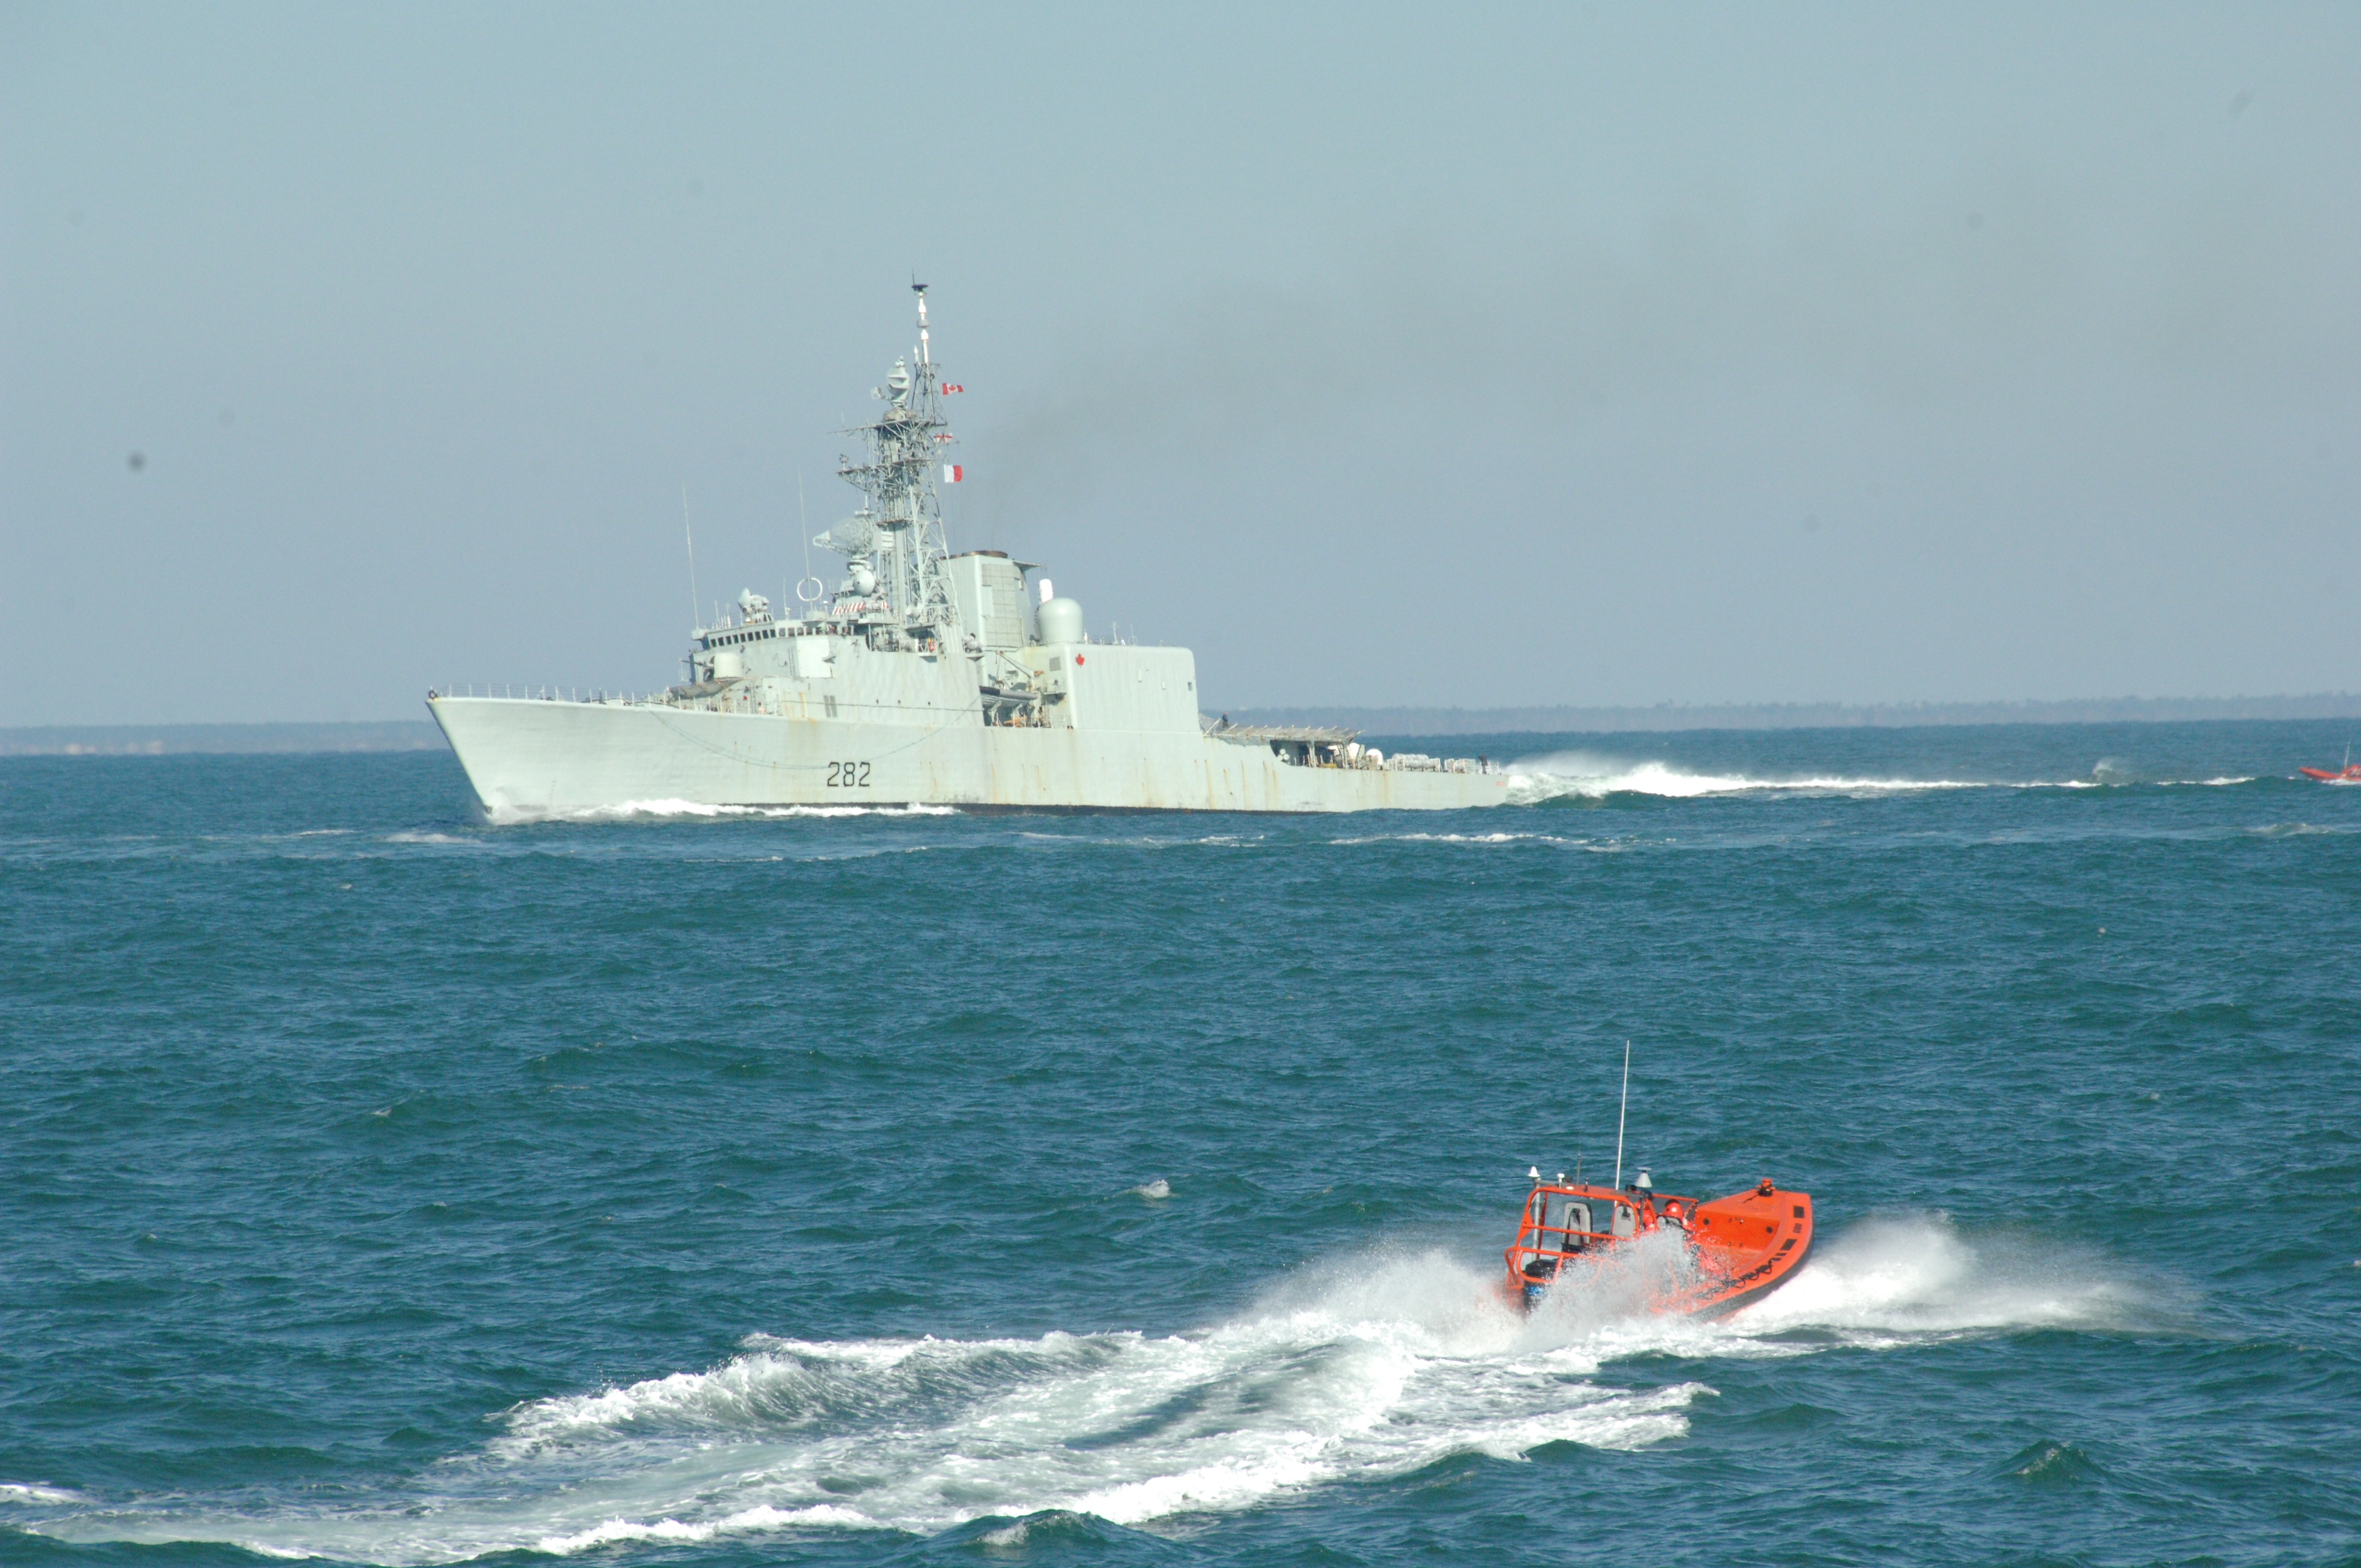 Diapositive - An unidentified vessel commences a simulated attack on the HMCS Athabaskan as part of the ITEE exercise.